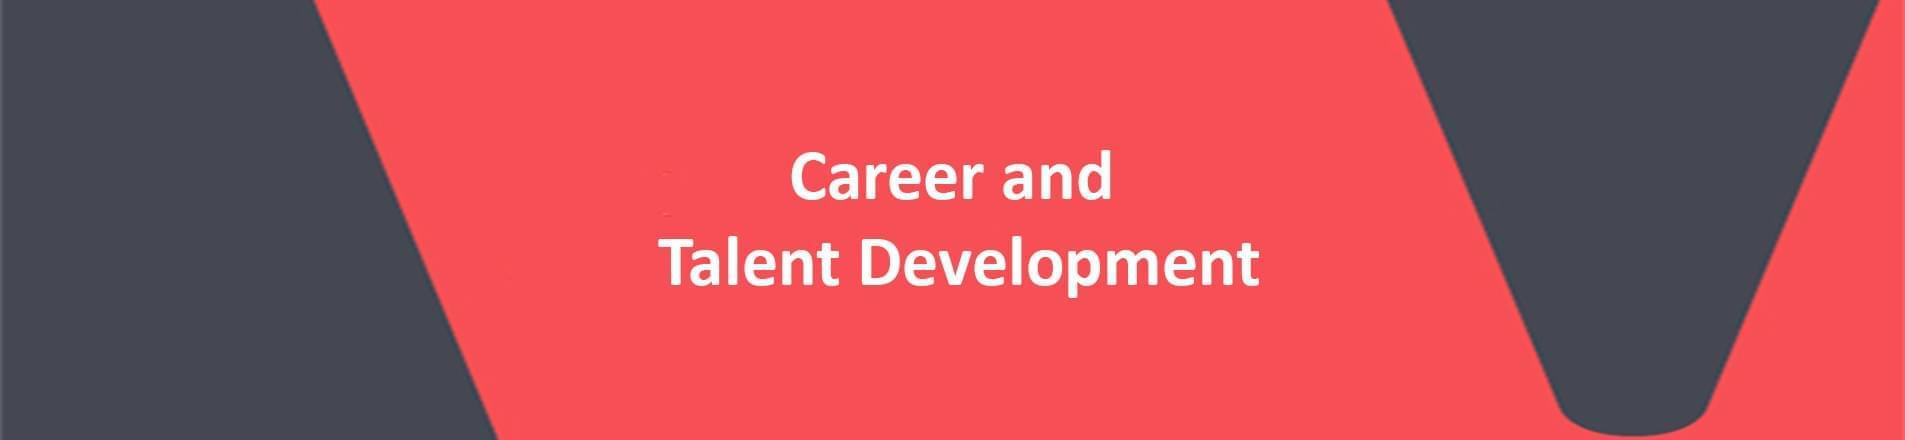 The words career and talent development on a red VERCIDA branded background